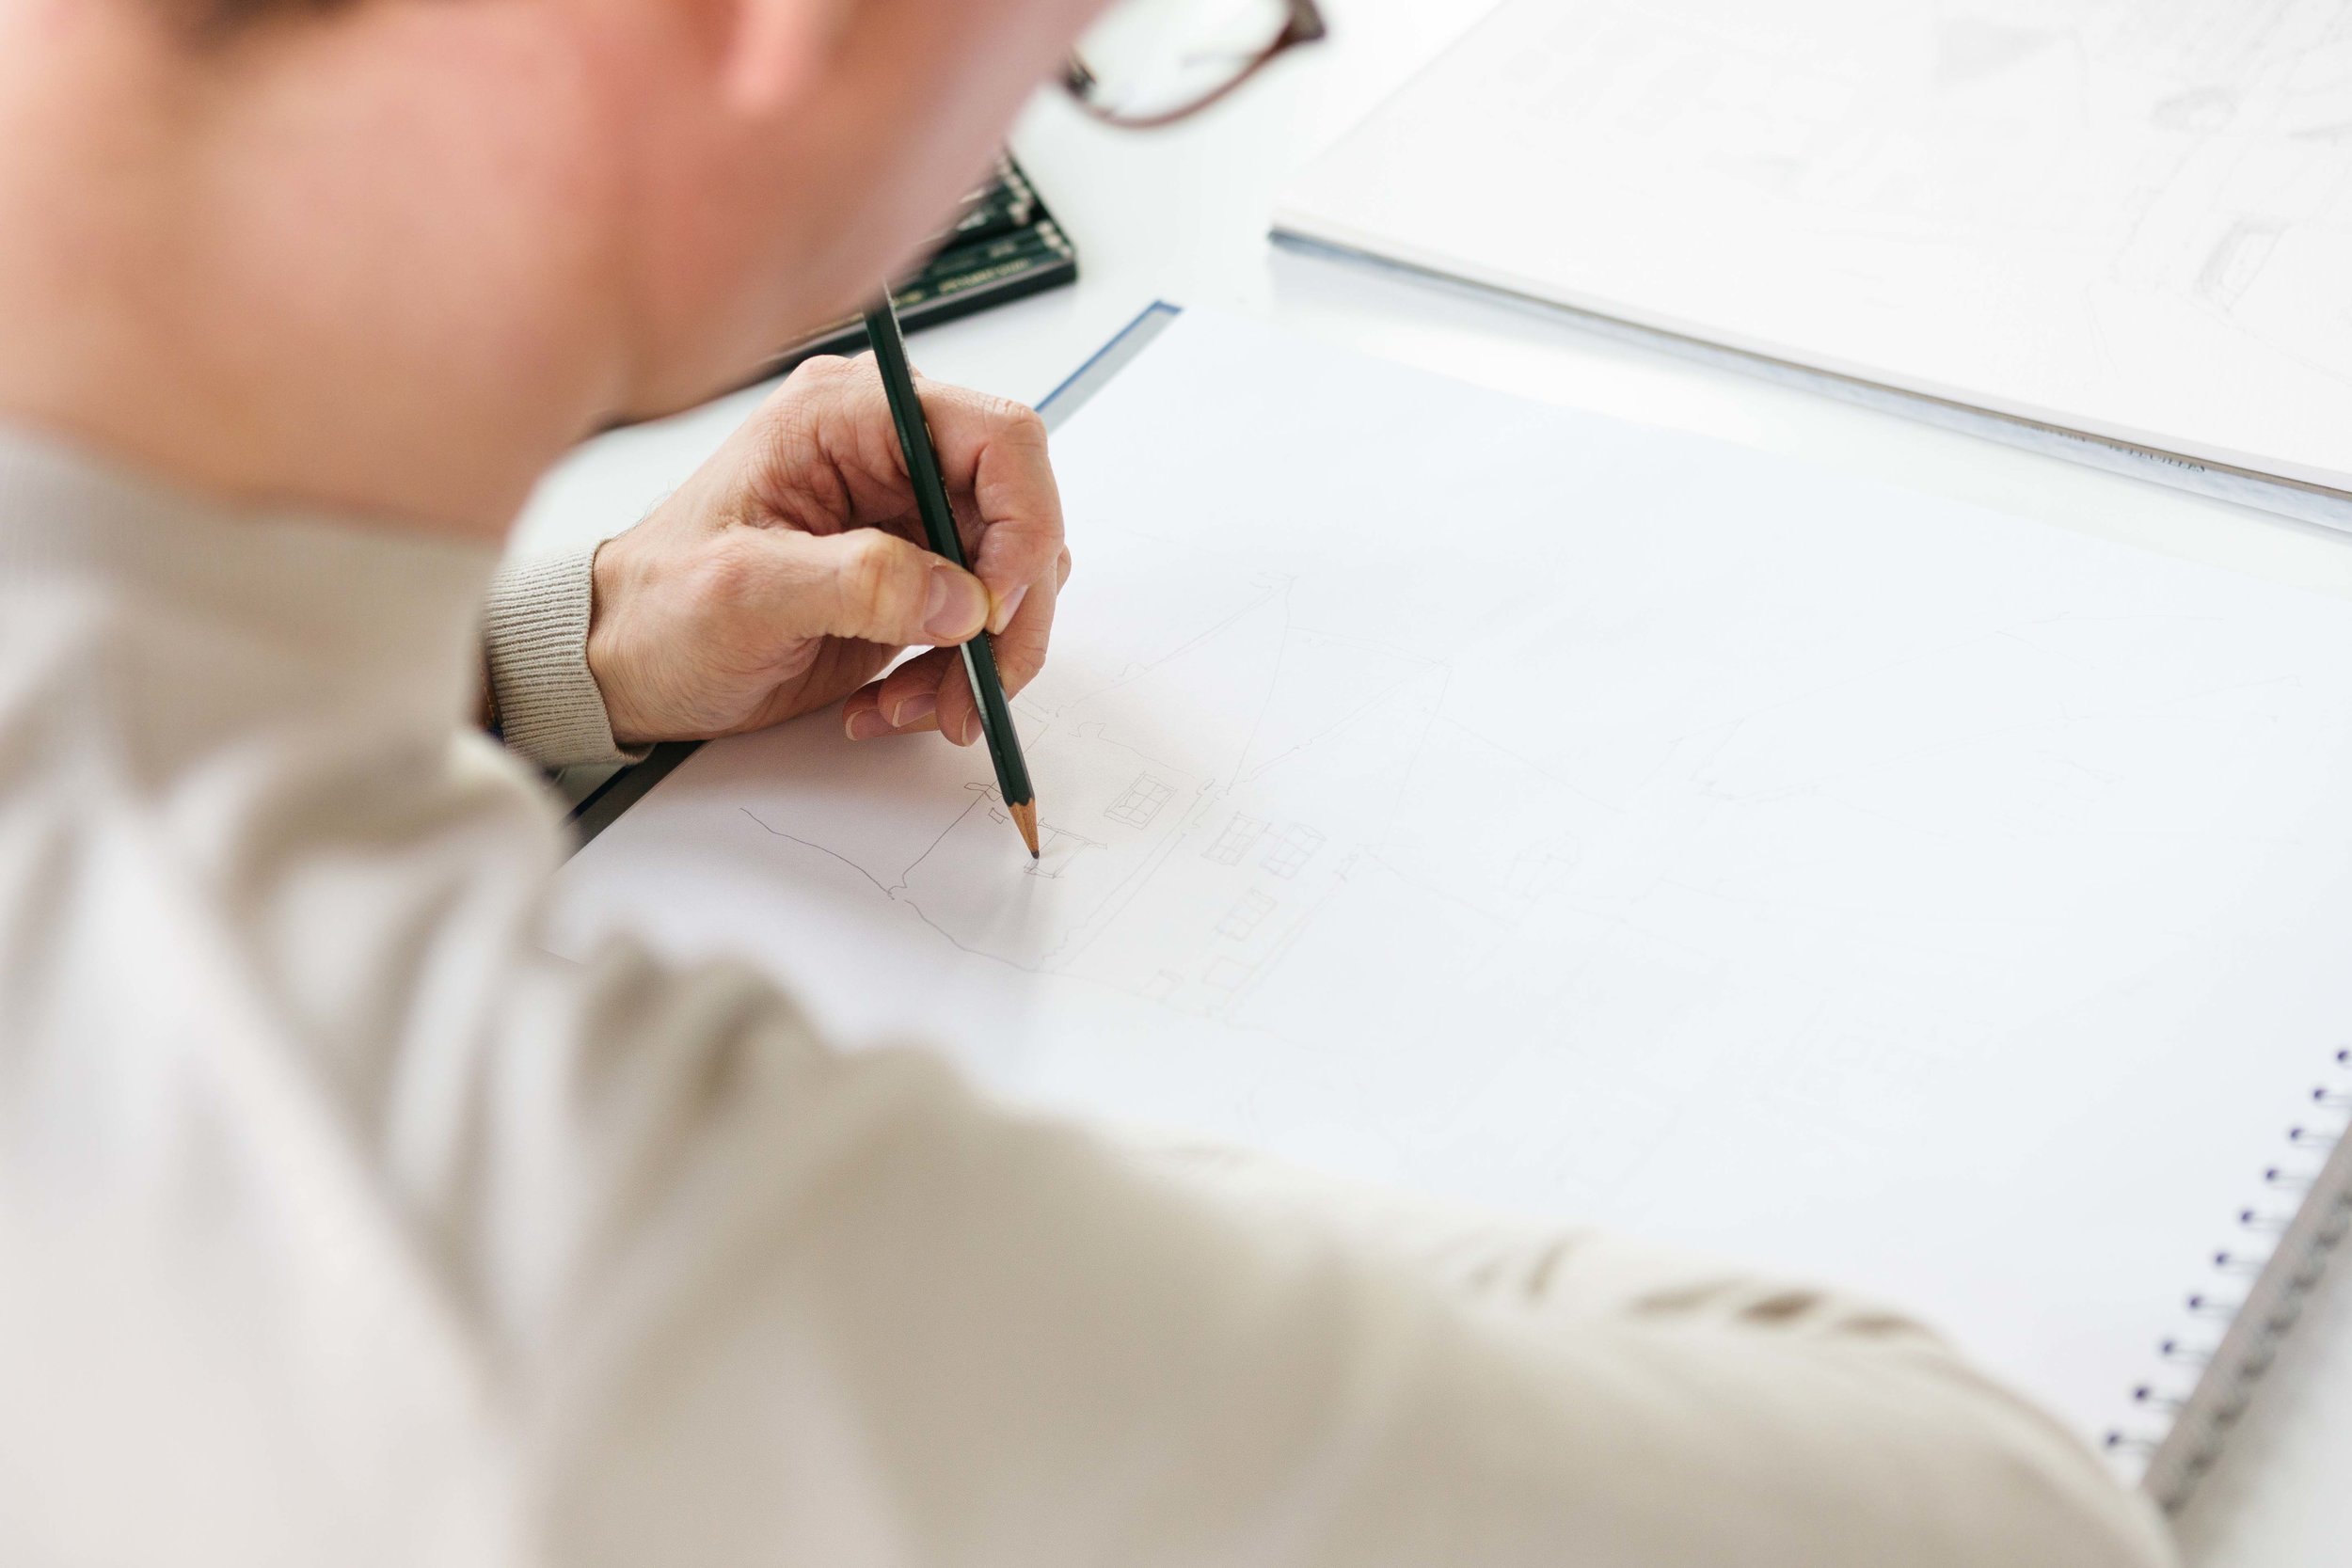 Documentary behind the scenes image of an artist drawing a new piece, on white paper with a pencil. Natasha Boyes Photography